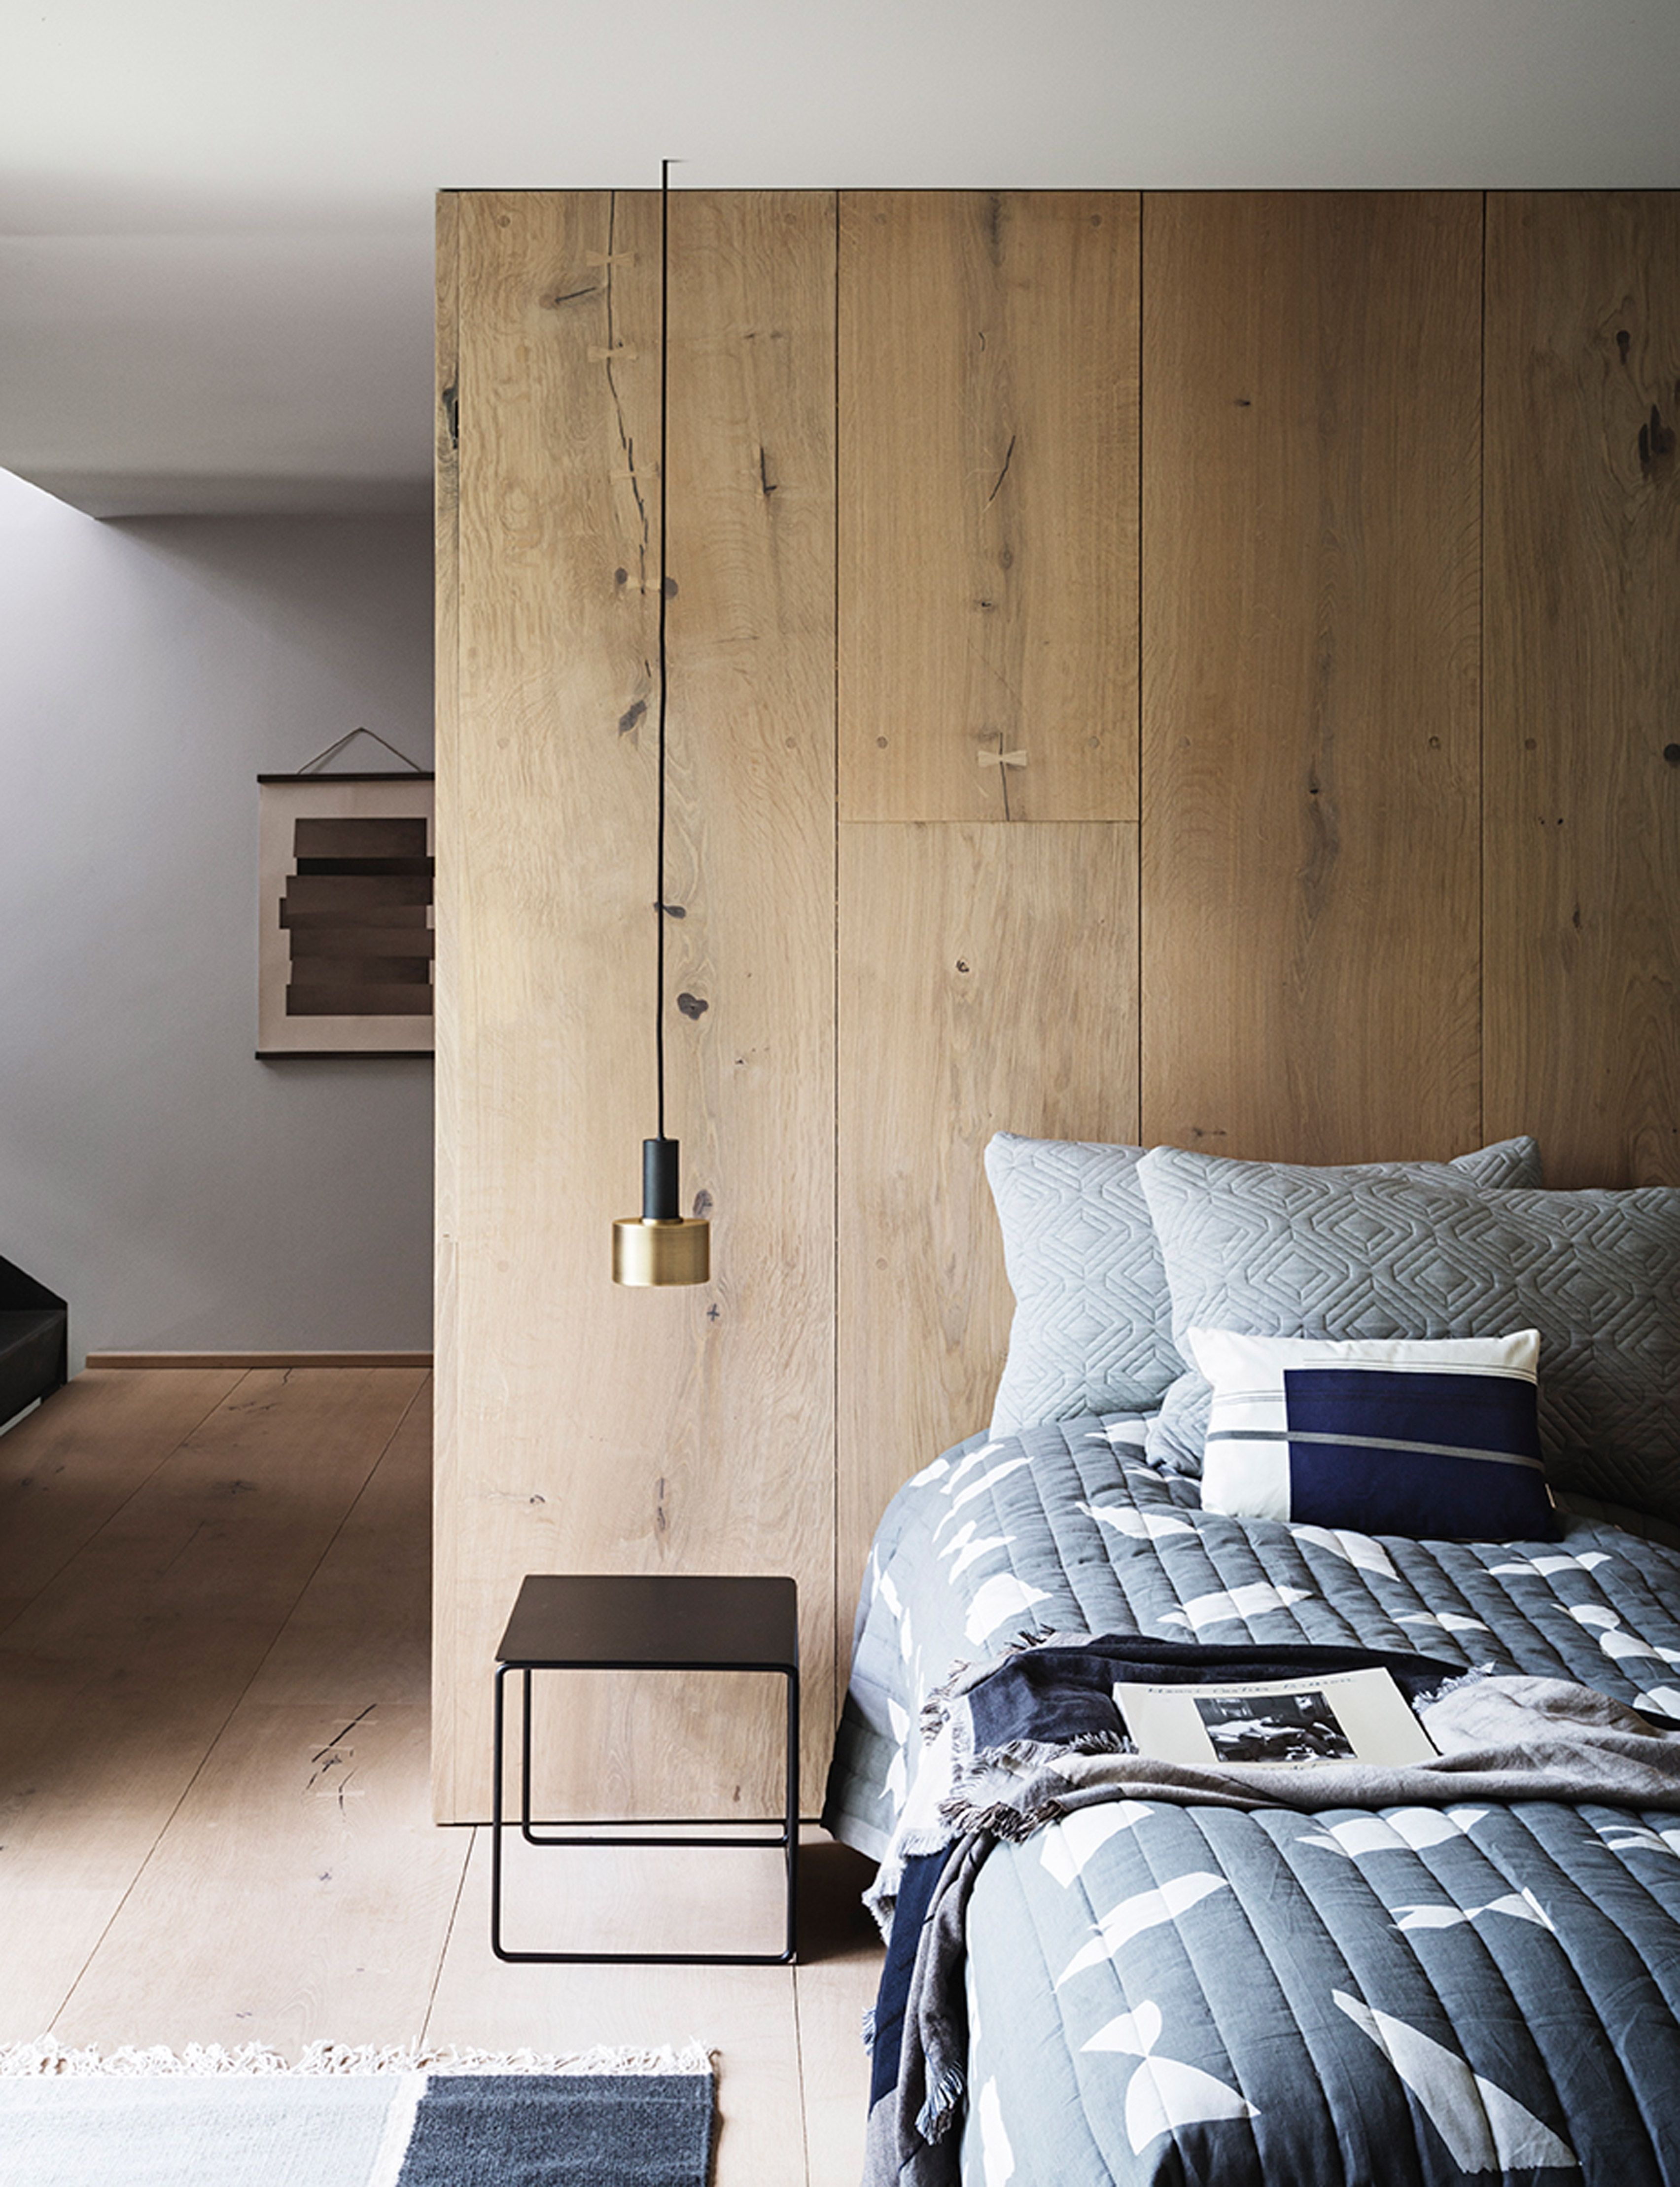 ferm living unveils collection of minimal furniture and homeware - Glass Front Living Room 2016